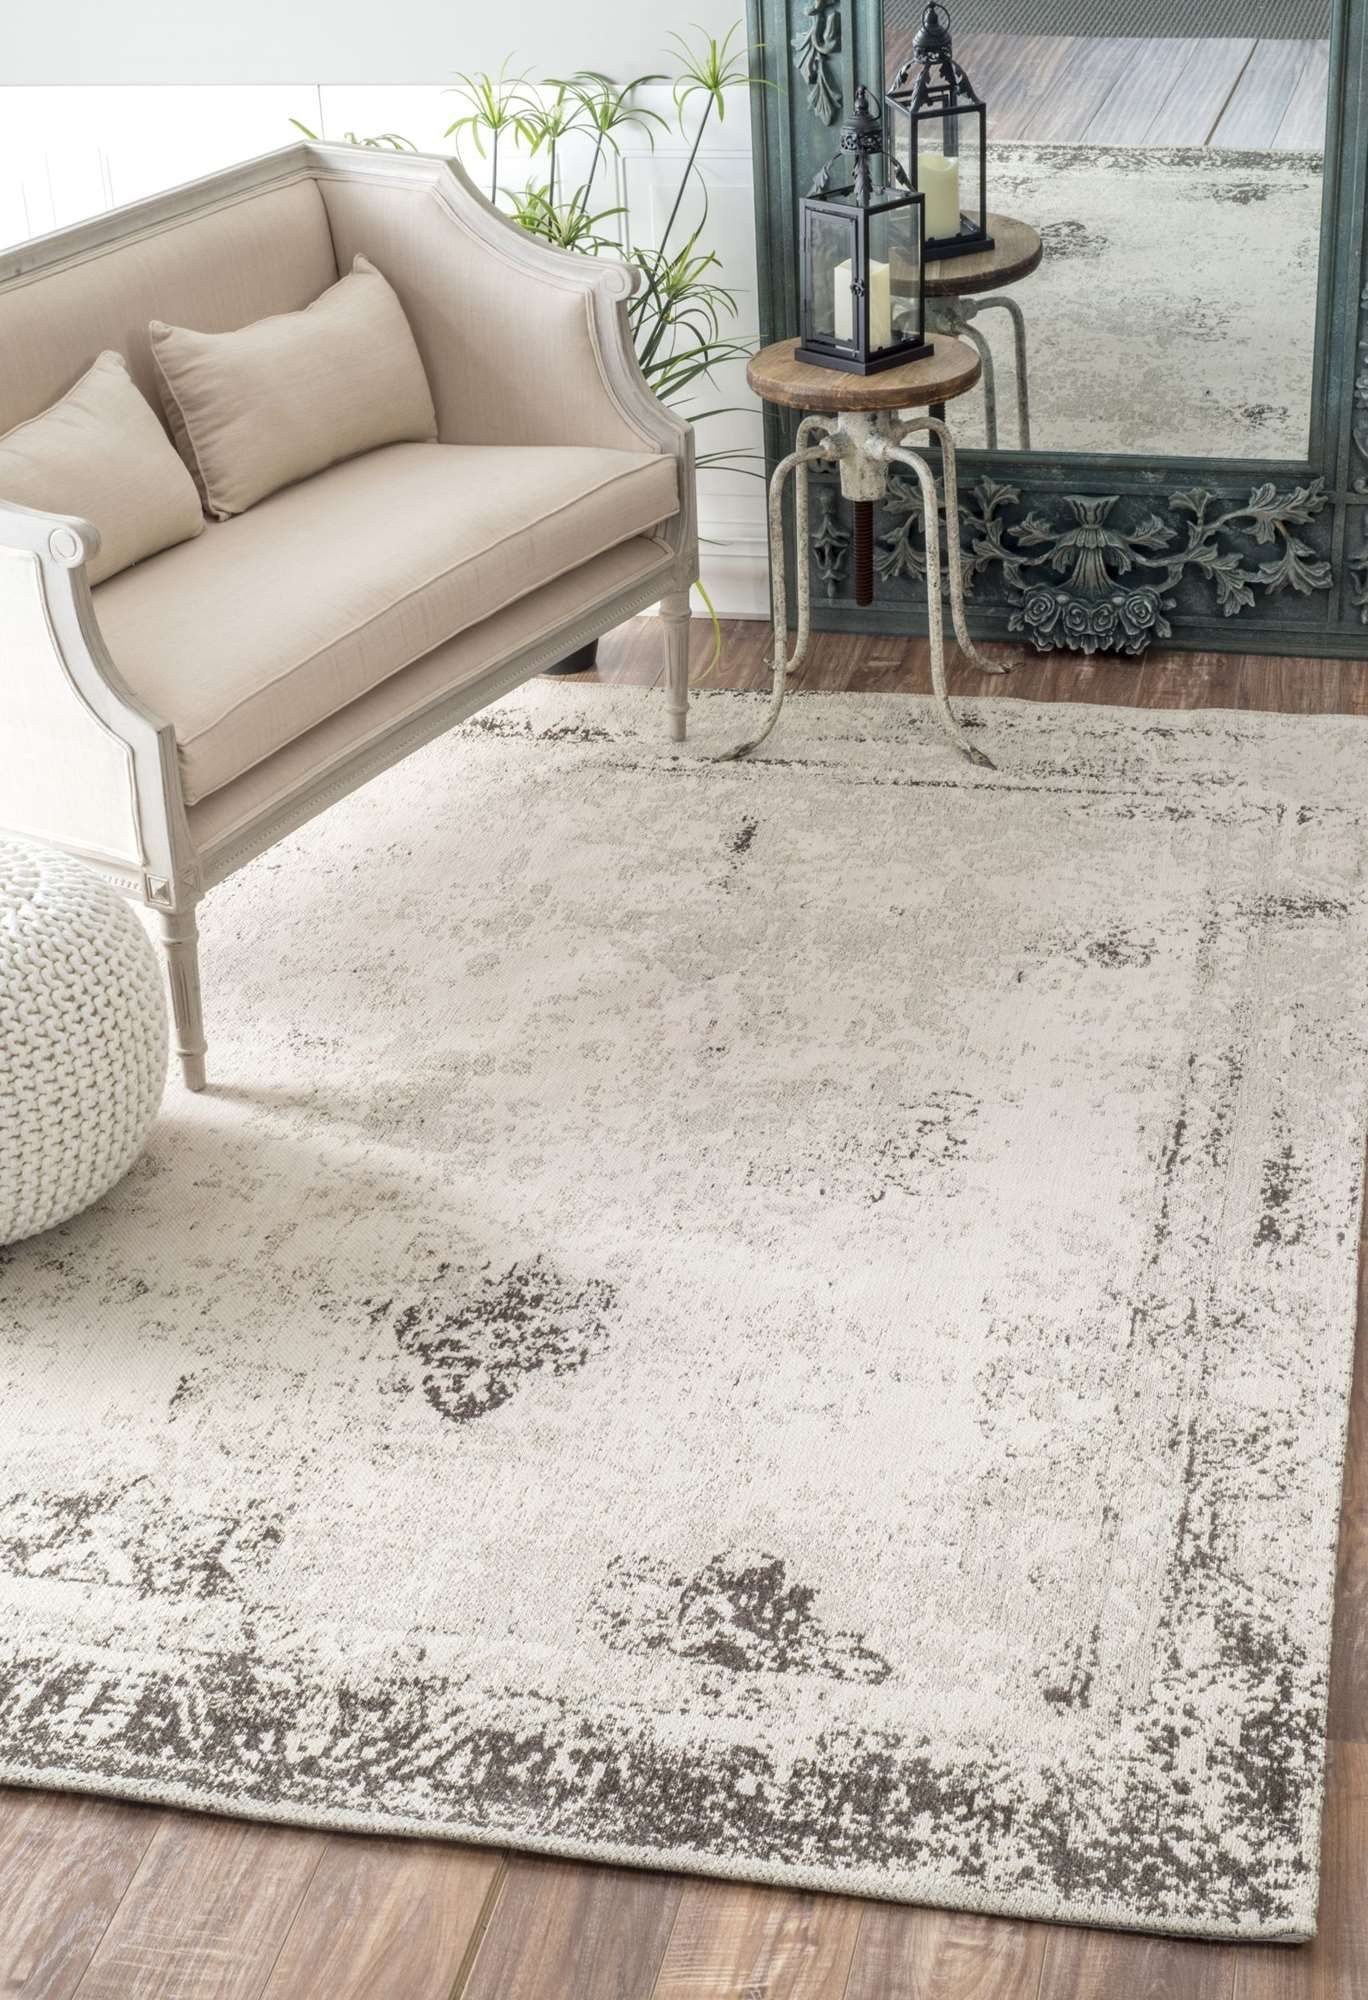 Maester Faded Abstract Gray Rug Area Rugs Distressed Rugs Grey Rugs